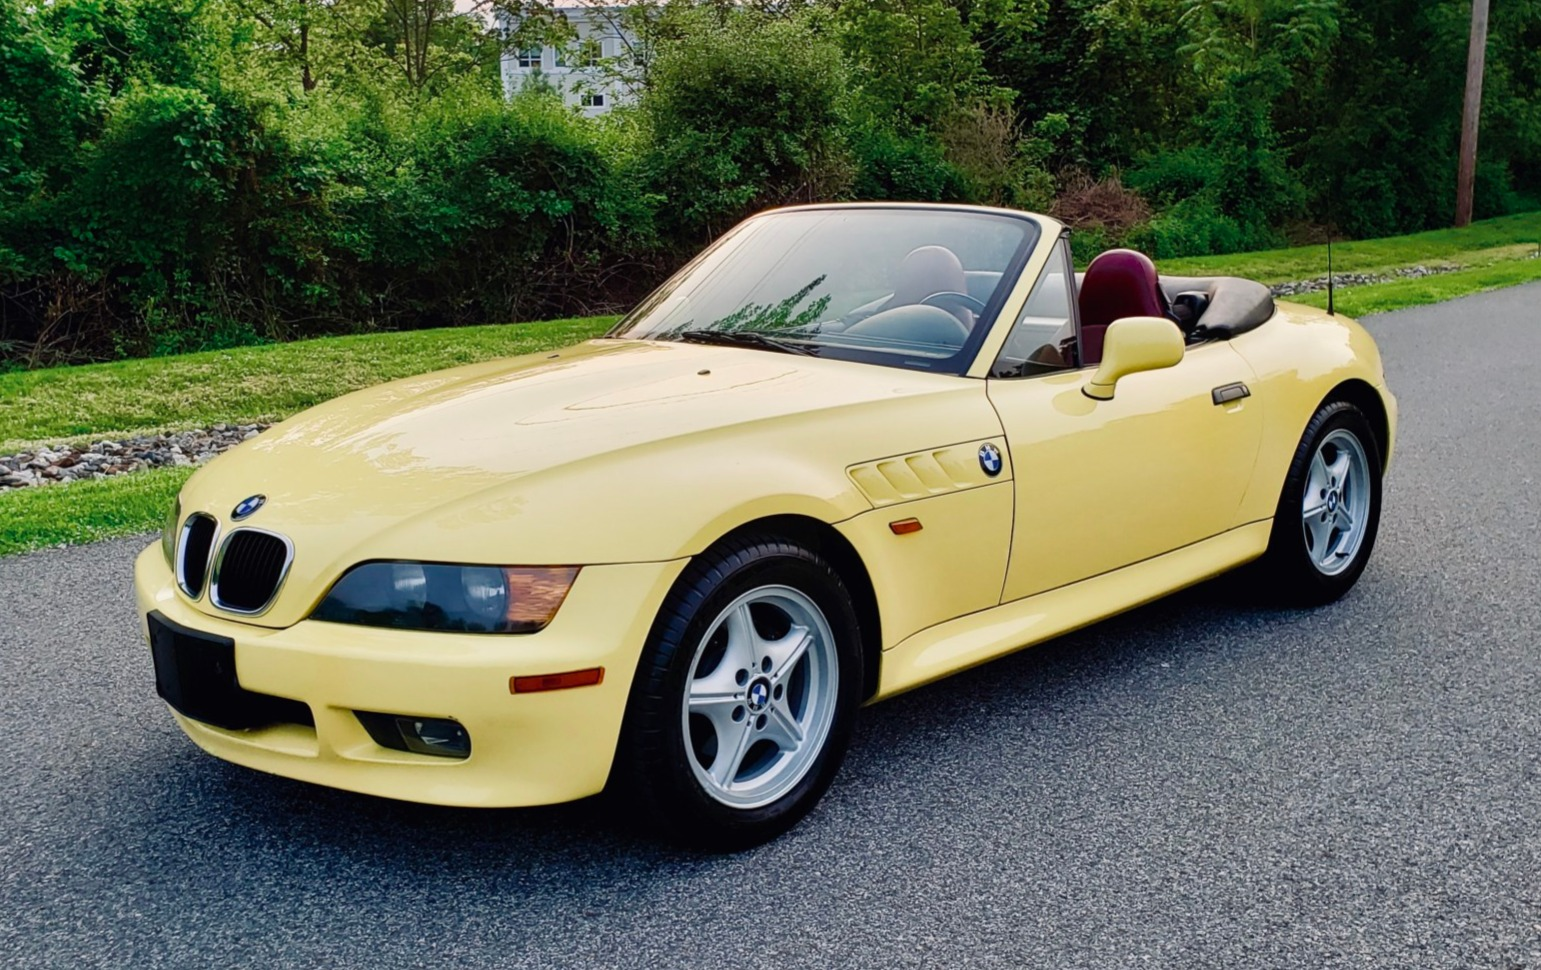 hight resolution of 57k mile 1997 bmw z3 5 speed for sale on bat auctions closed on june 11 2019 lot 19 757 bring a trailer